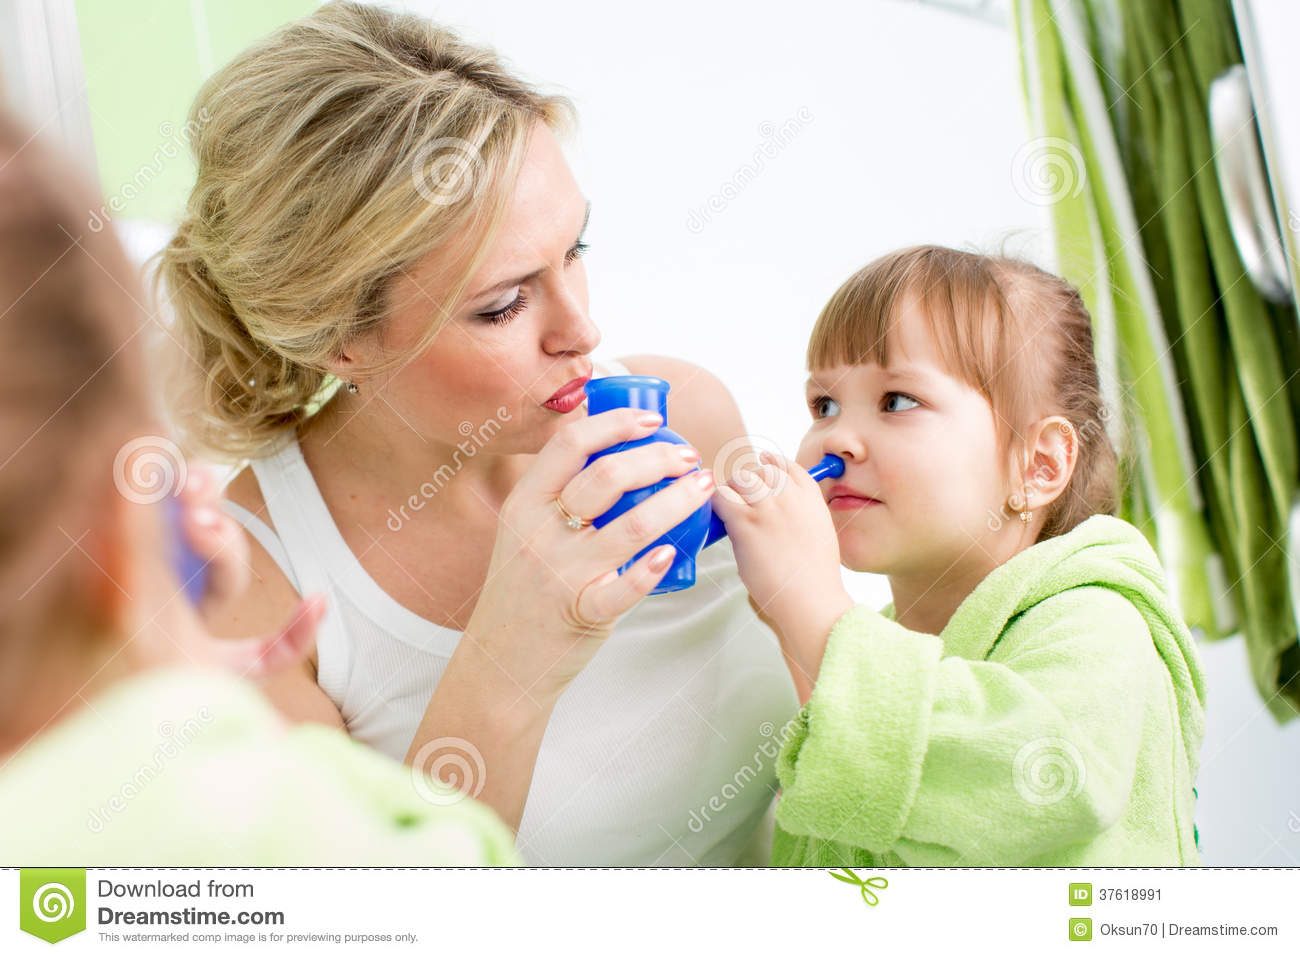 Mother and kid with neti pot for nasal irrigation